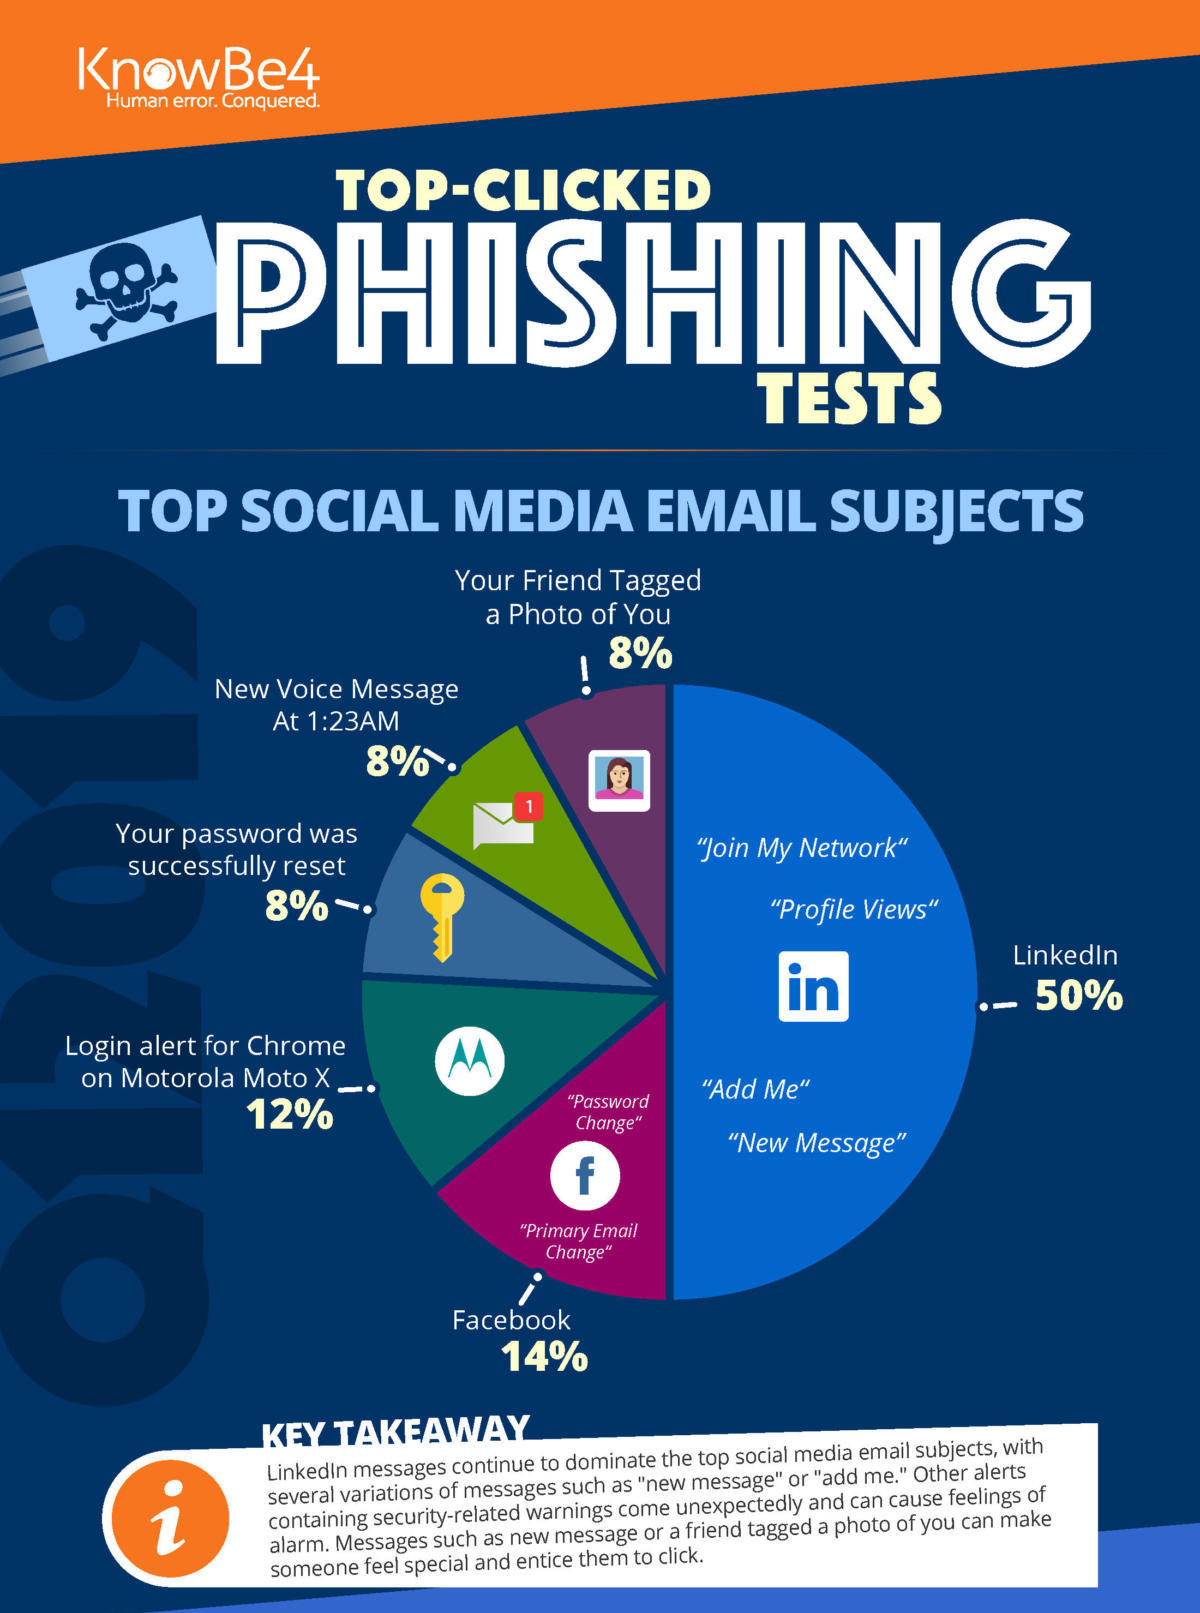 knowbe4-phishing-infographic